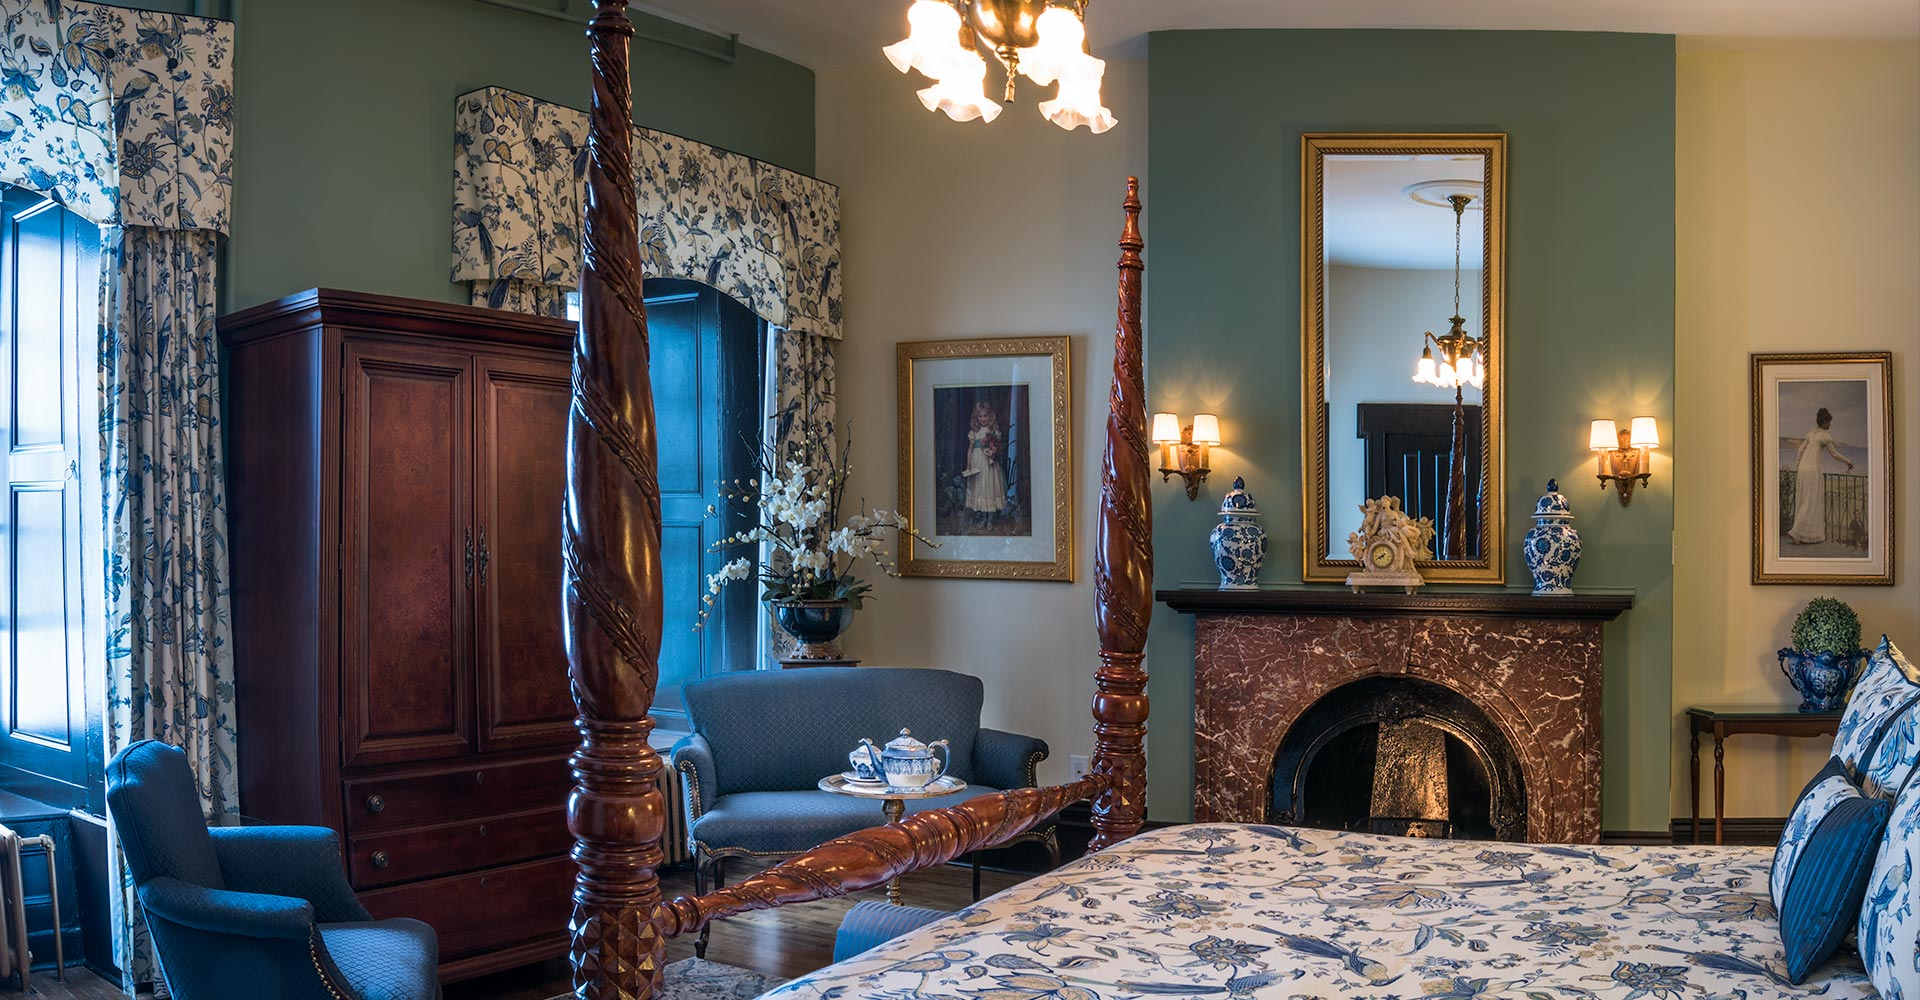 Romance And Elegance Of A Prestige Room In A Victorian Hotel